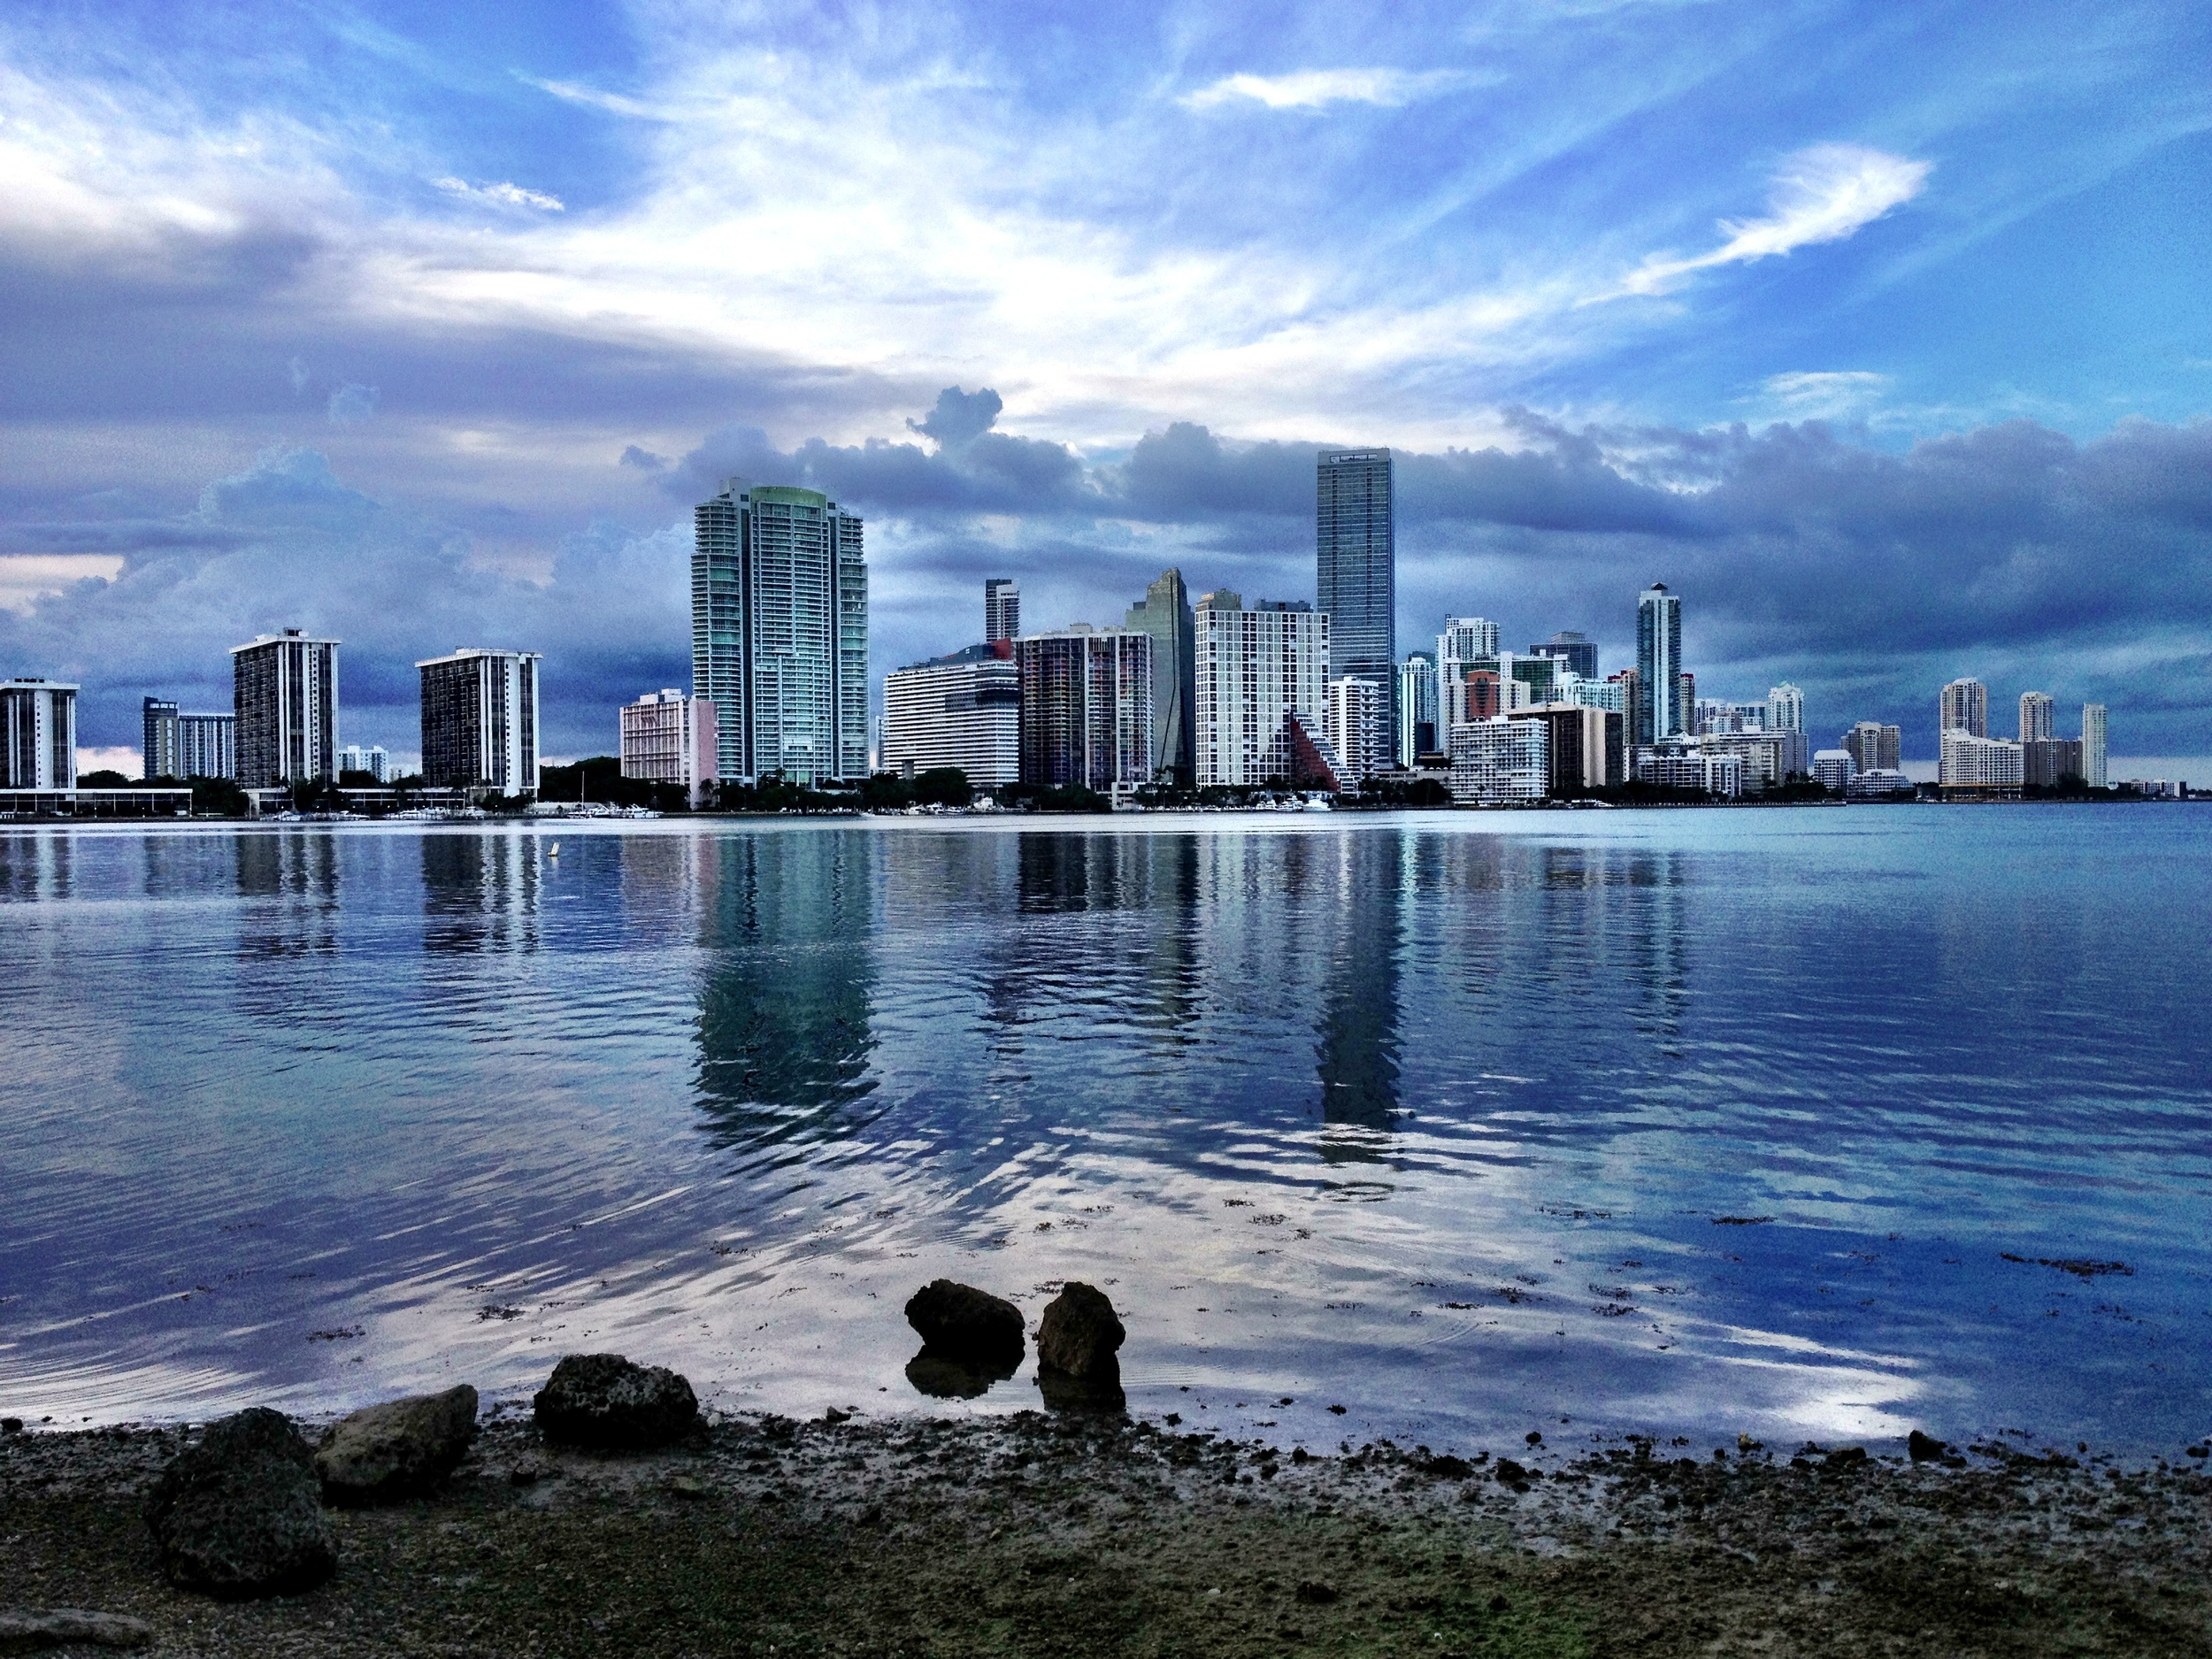 A view of Miami from the Rickenbacker causeway.